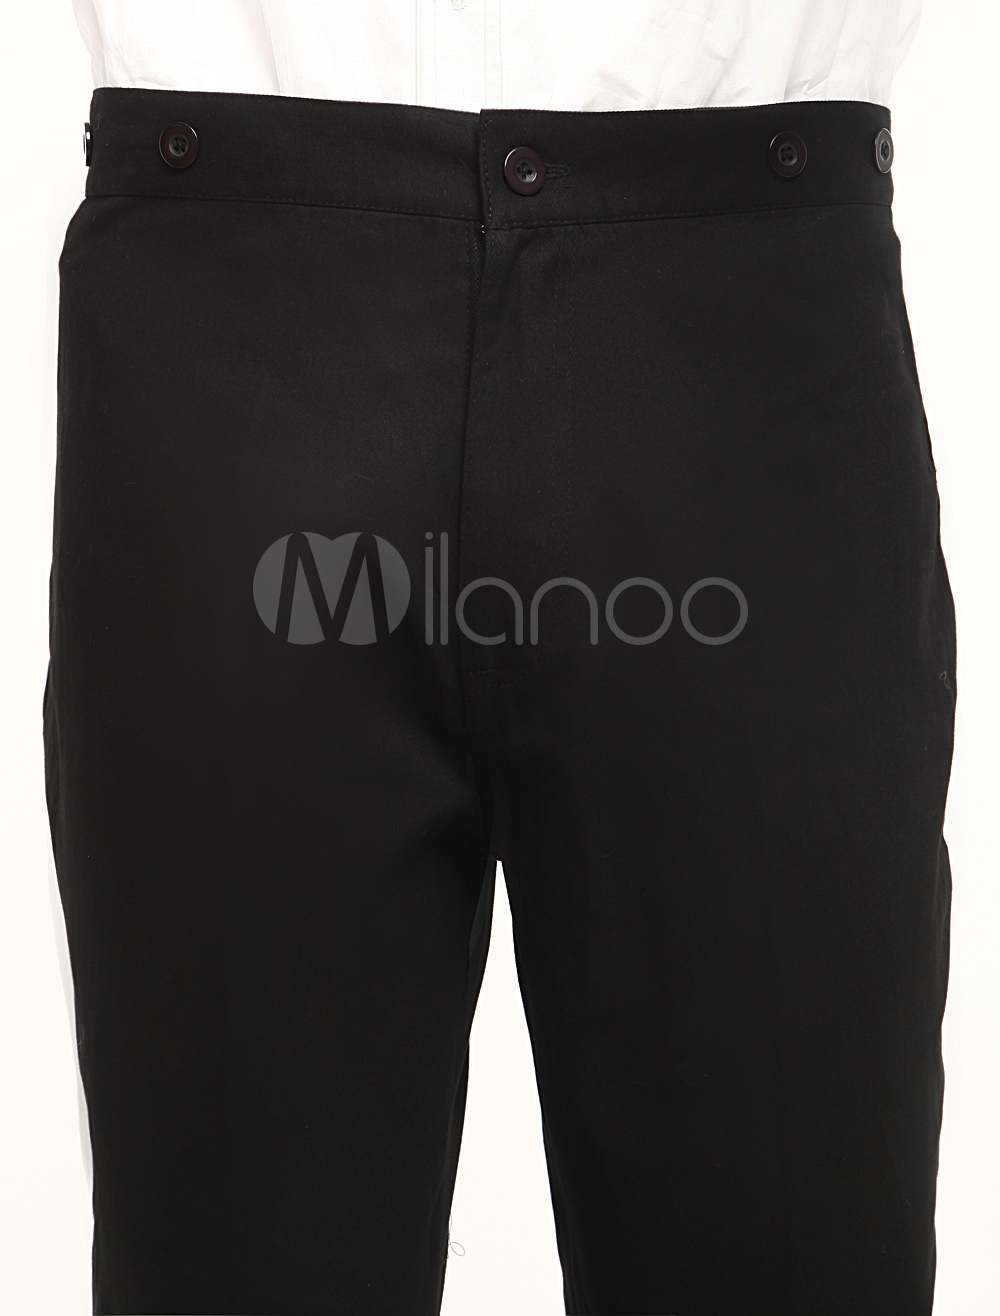 Modern Black Cotton Mens Steampunk Trousers $49.99 AT vintagedancer.com